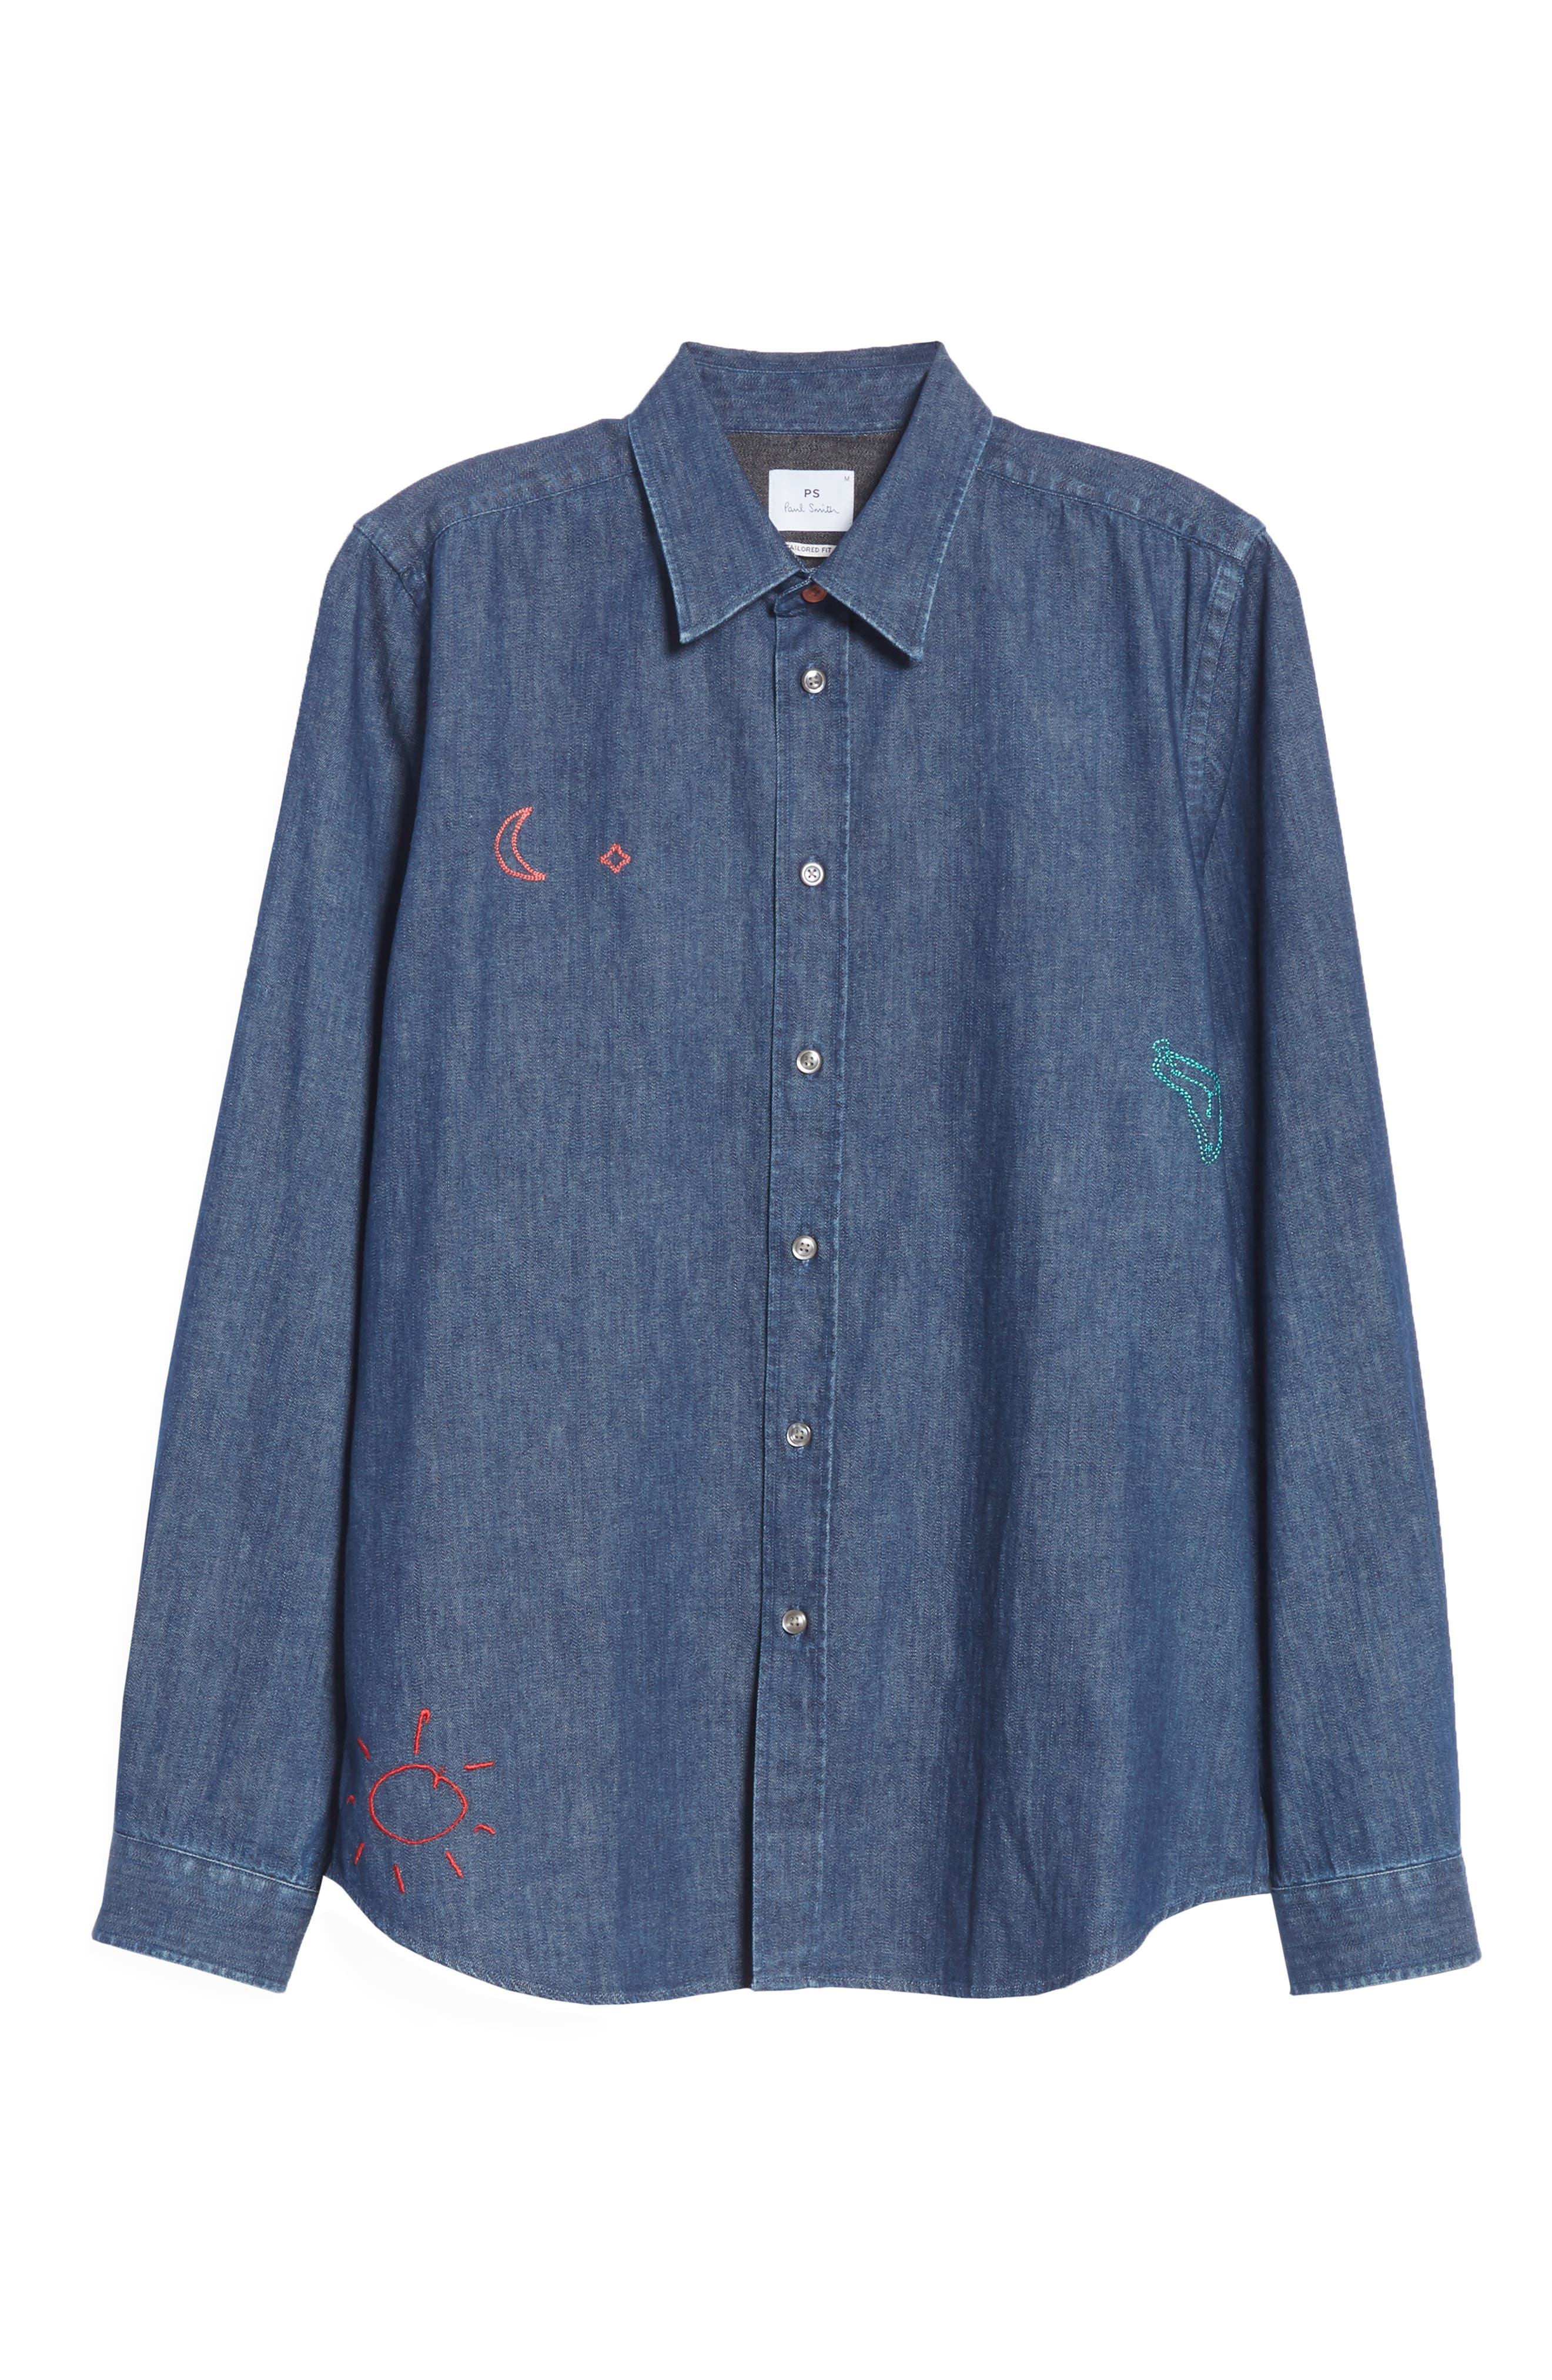 PS PAUL SMITH,                             Denim Shirt with Embroidery,                             Alternate thumbnail 6, color,                             427